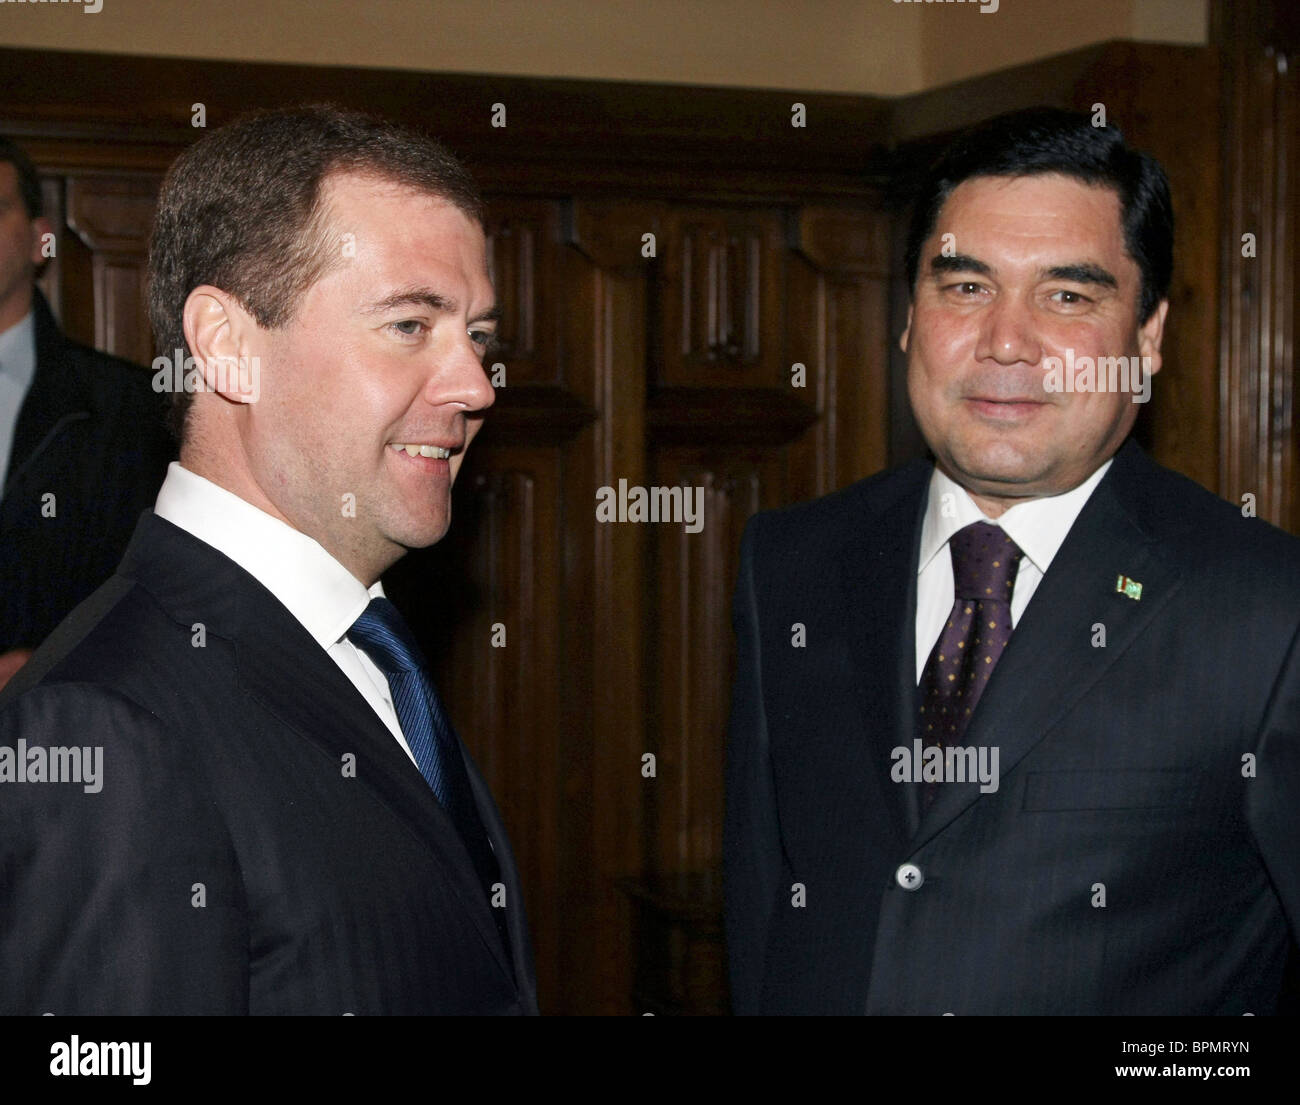 Turkmen president on official visit to Russia - Stock Image